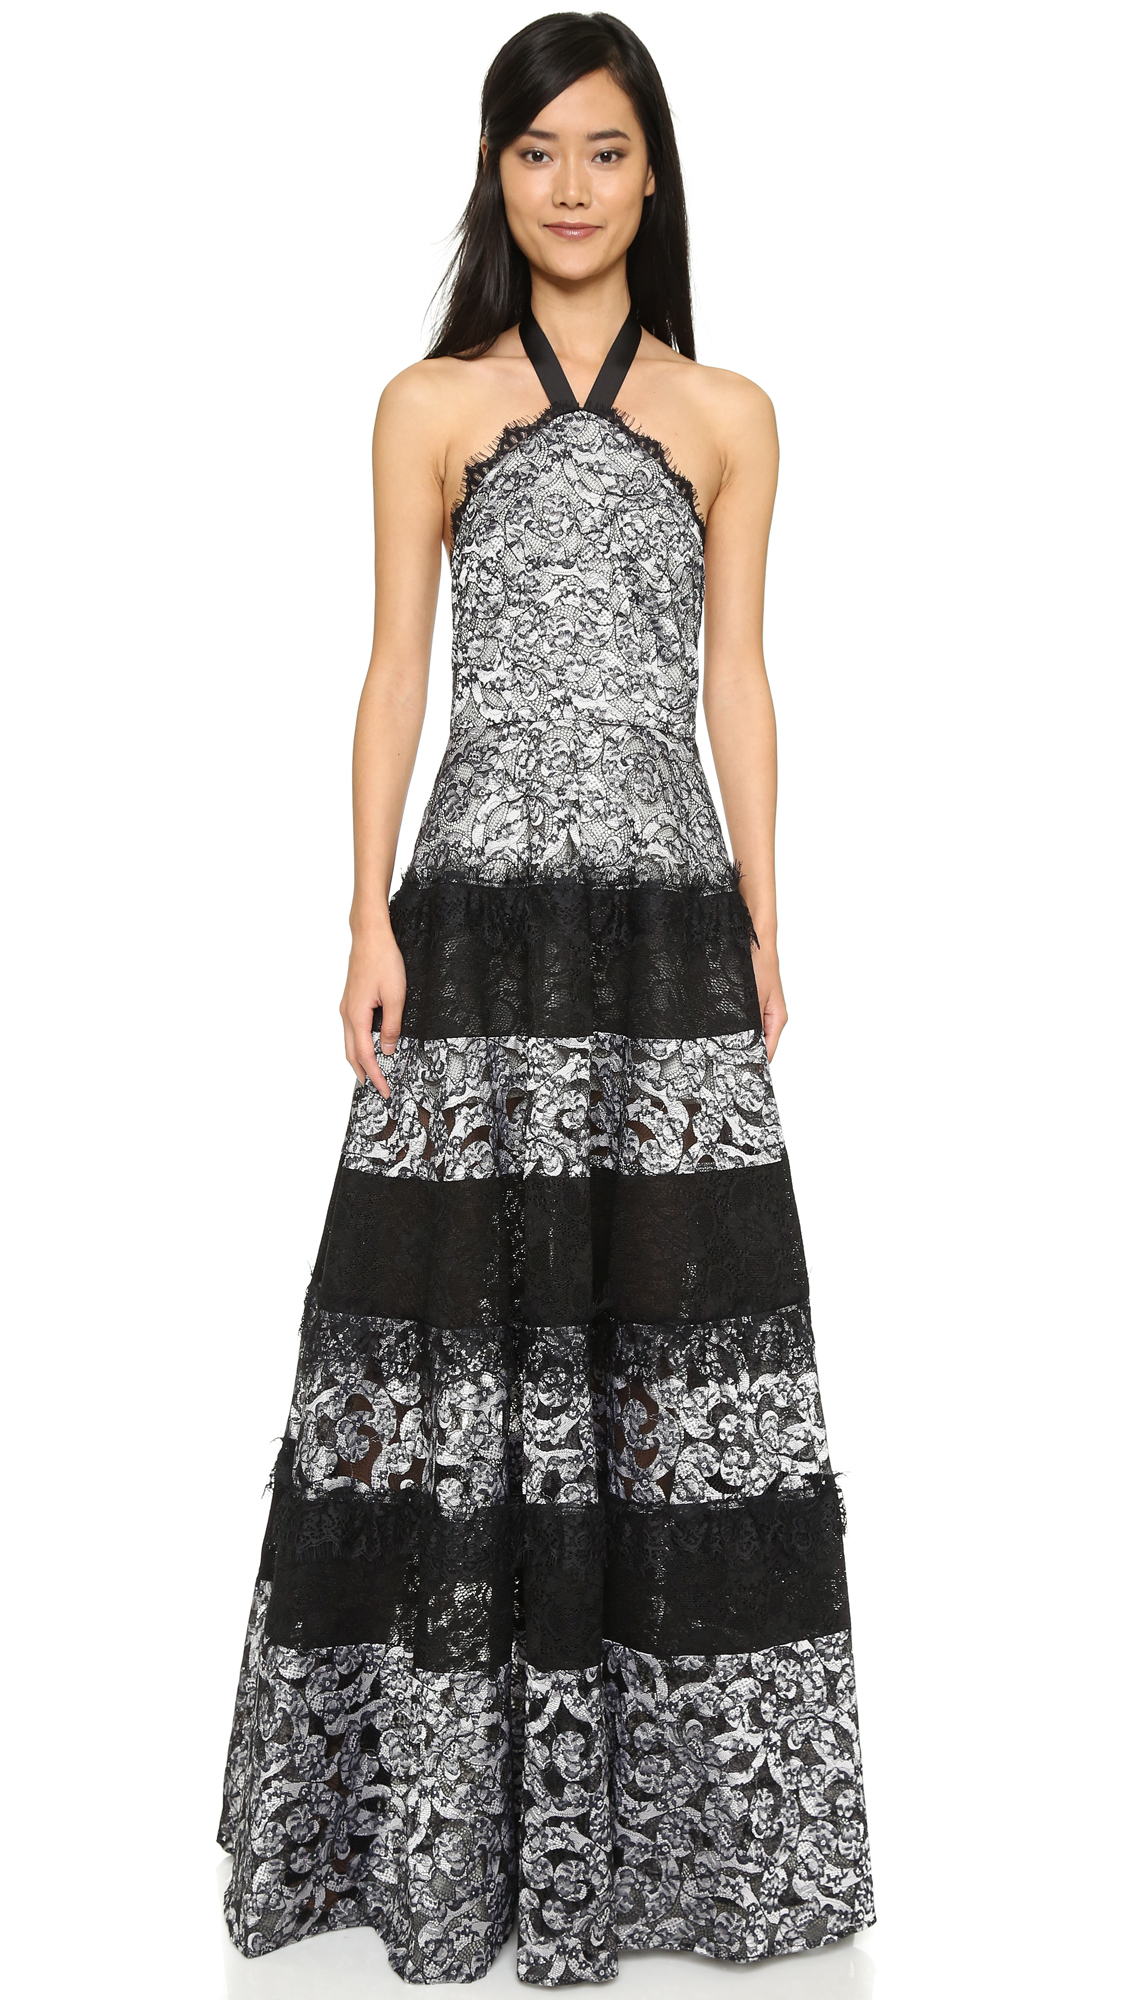 Alexis Imelda Lace Maxi Dress | 15% off first app purchase with ...